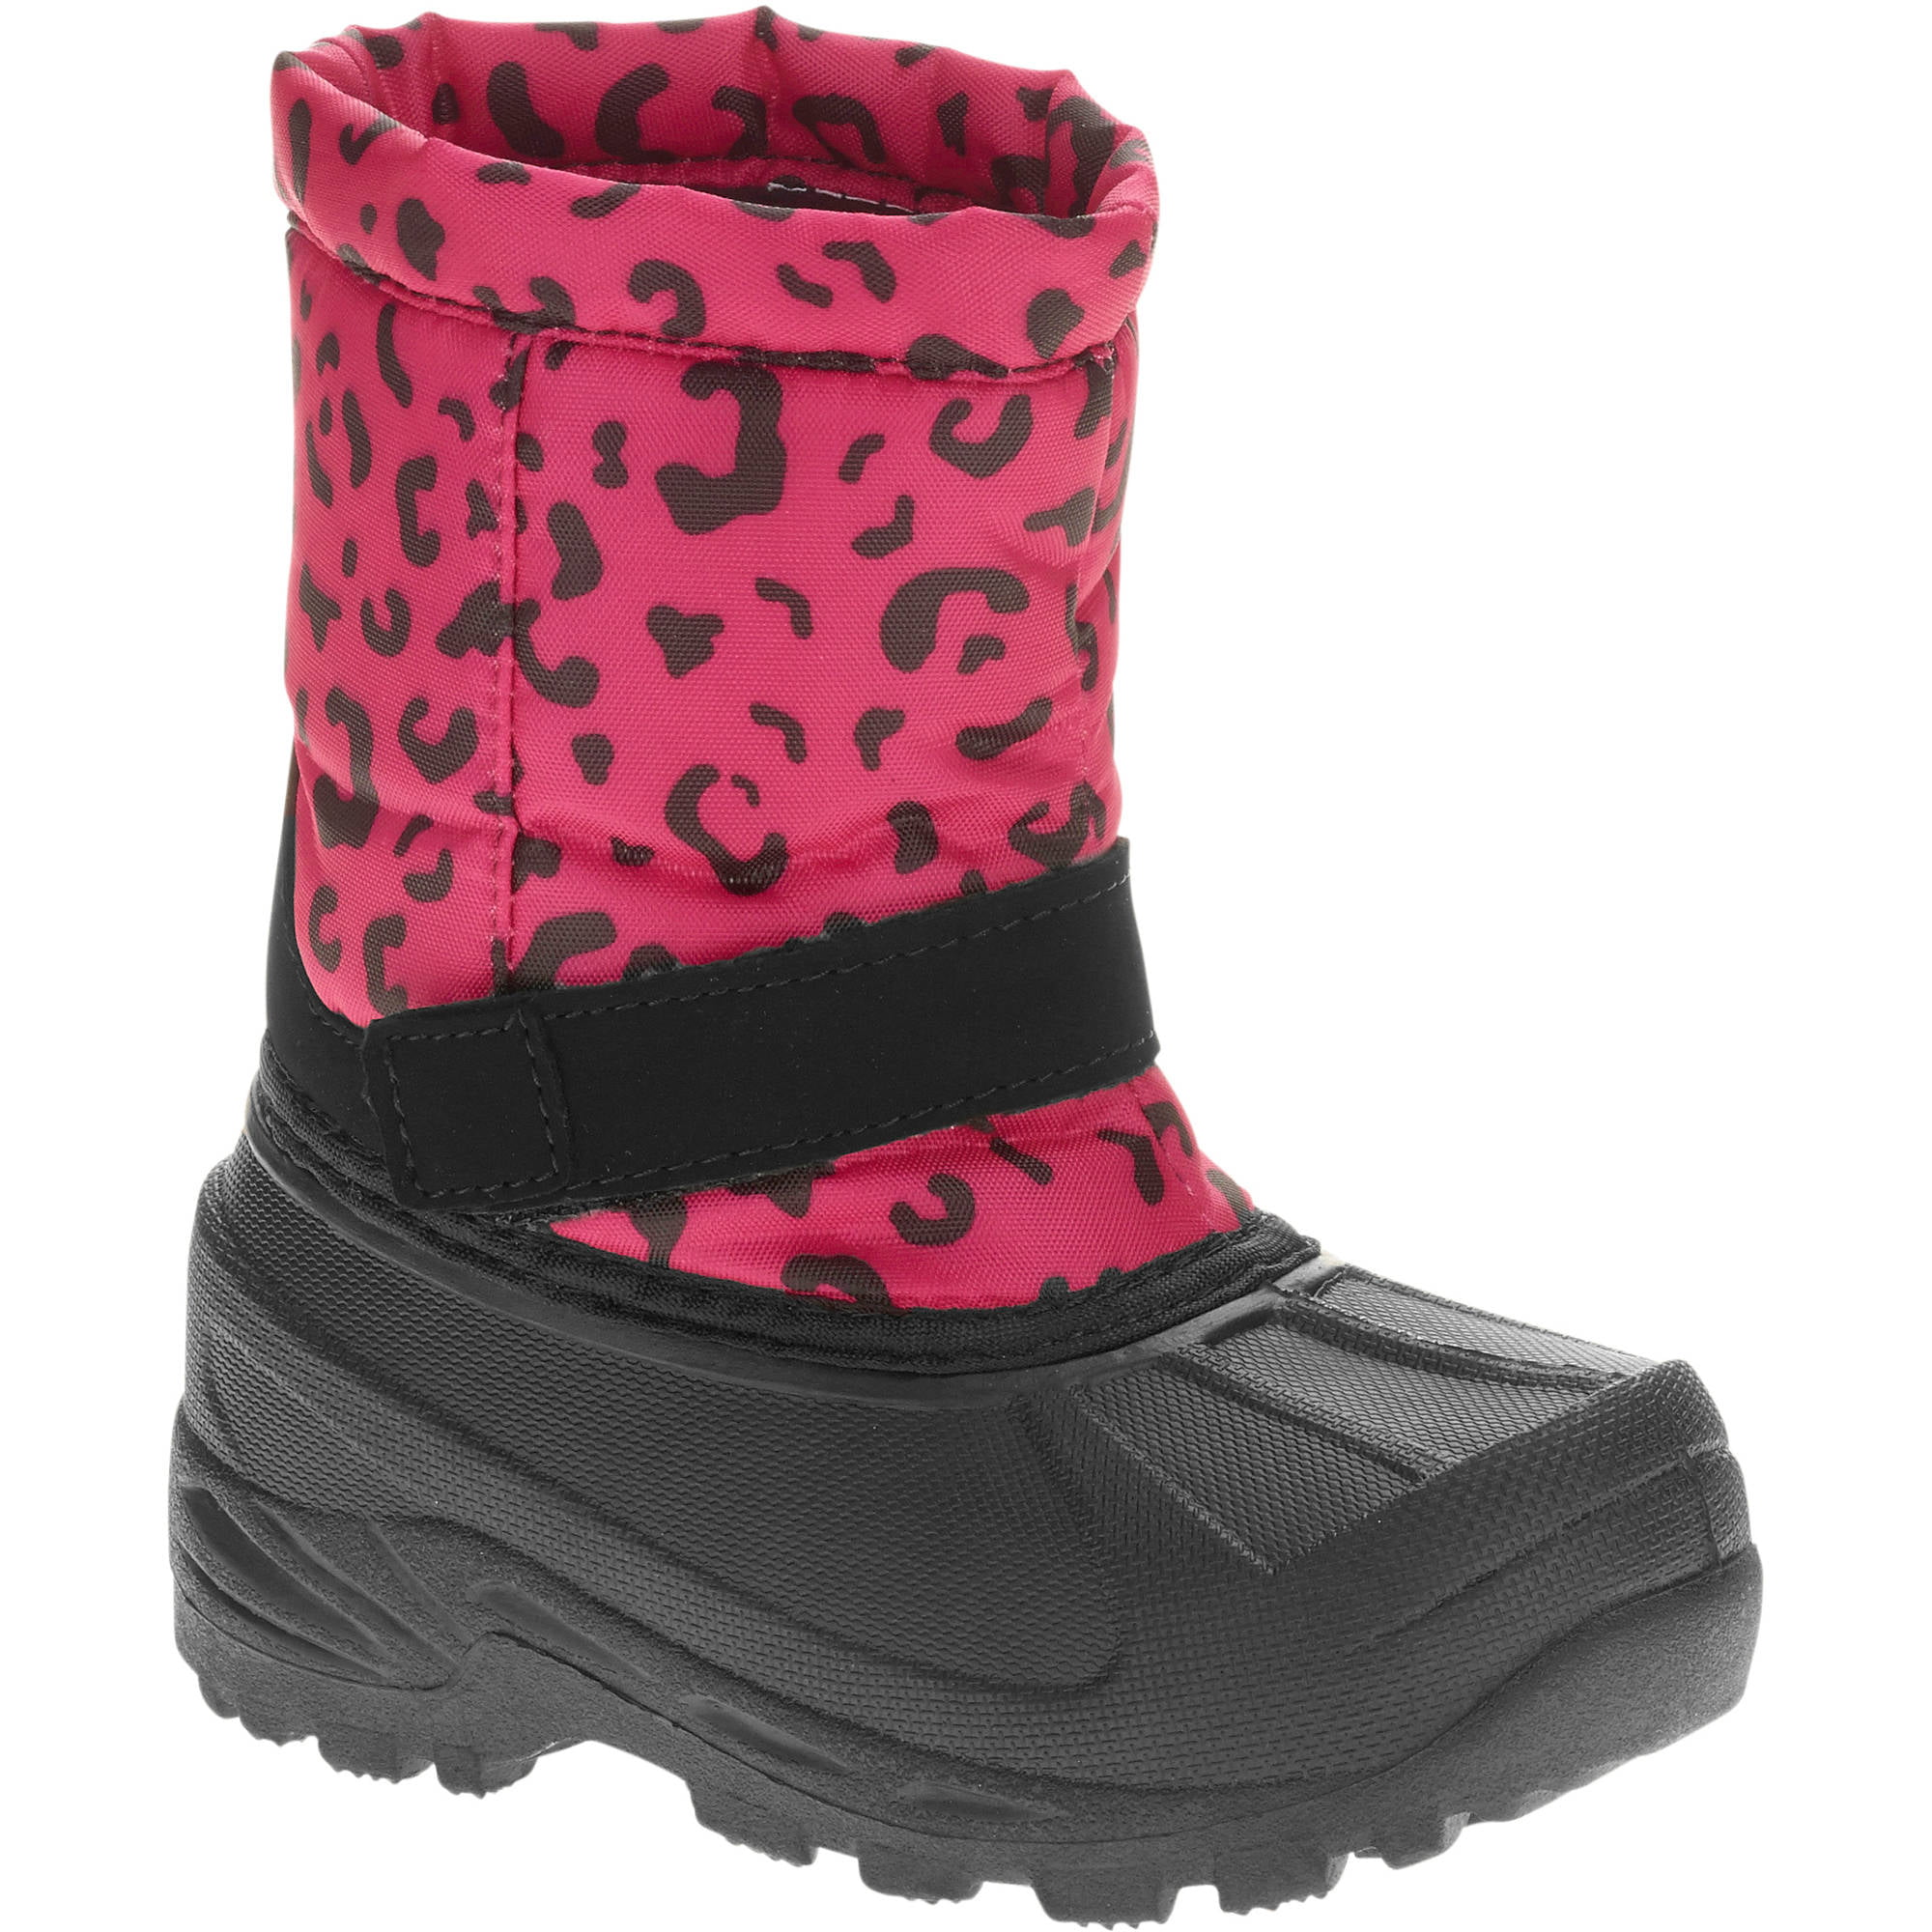 Toddler Girls' Winter Boots